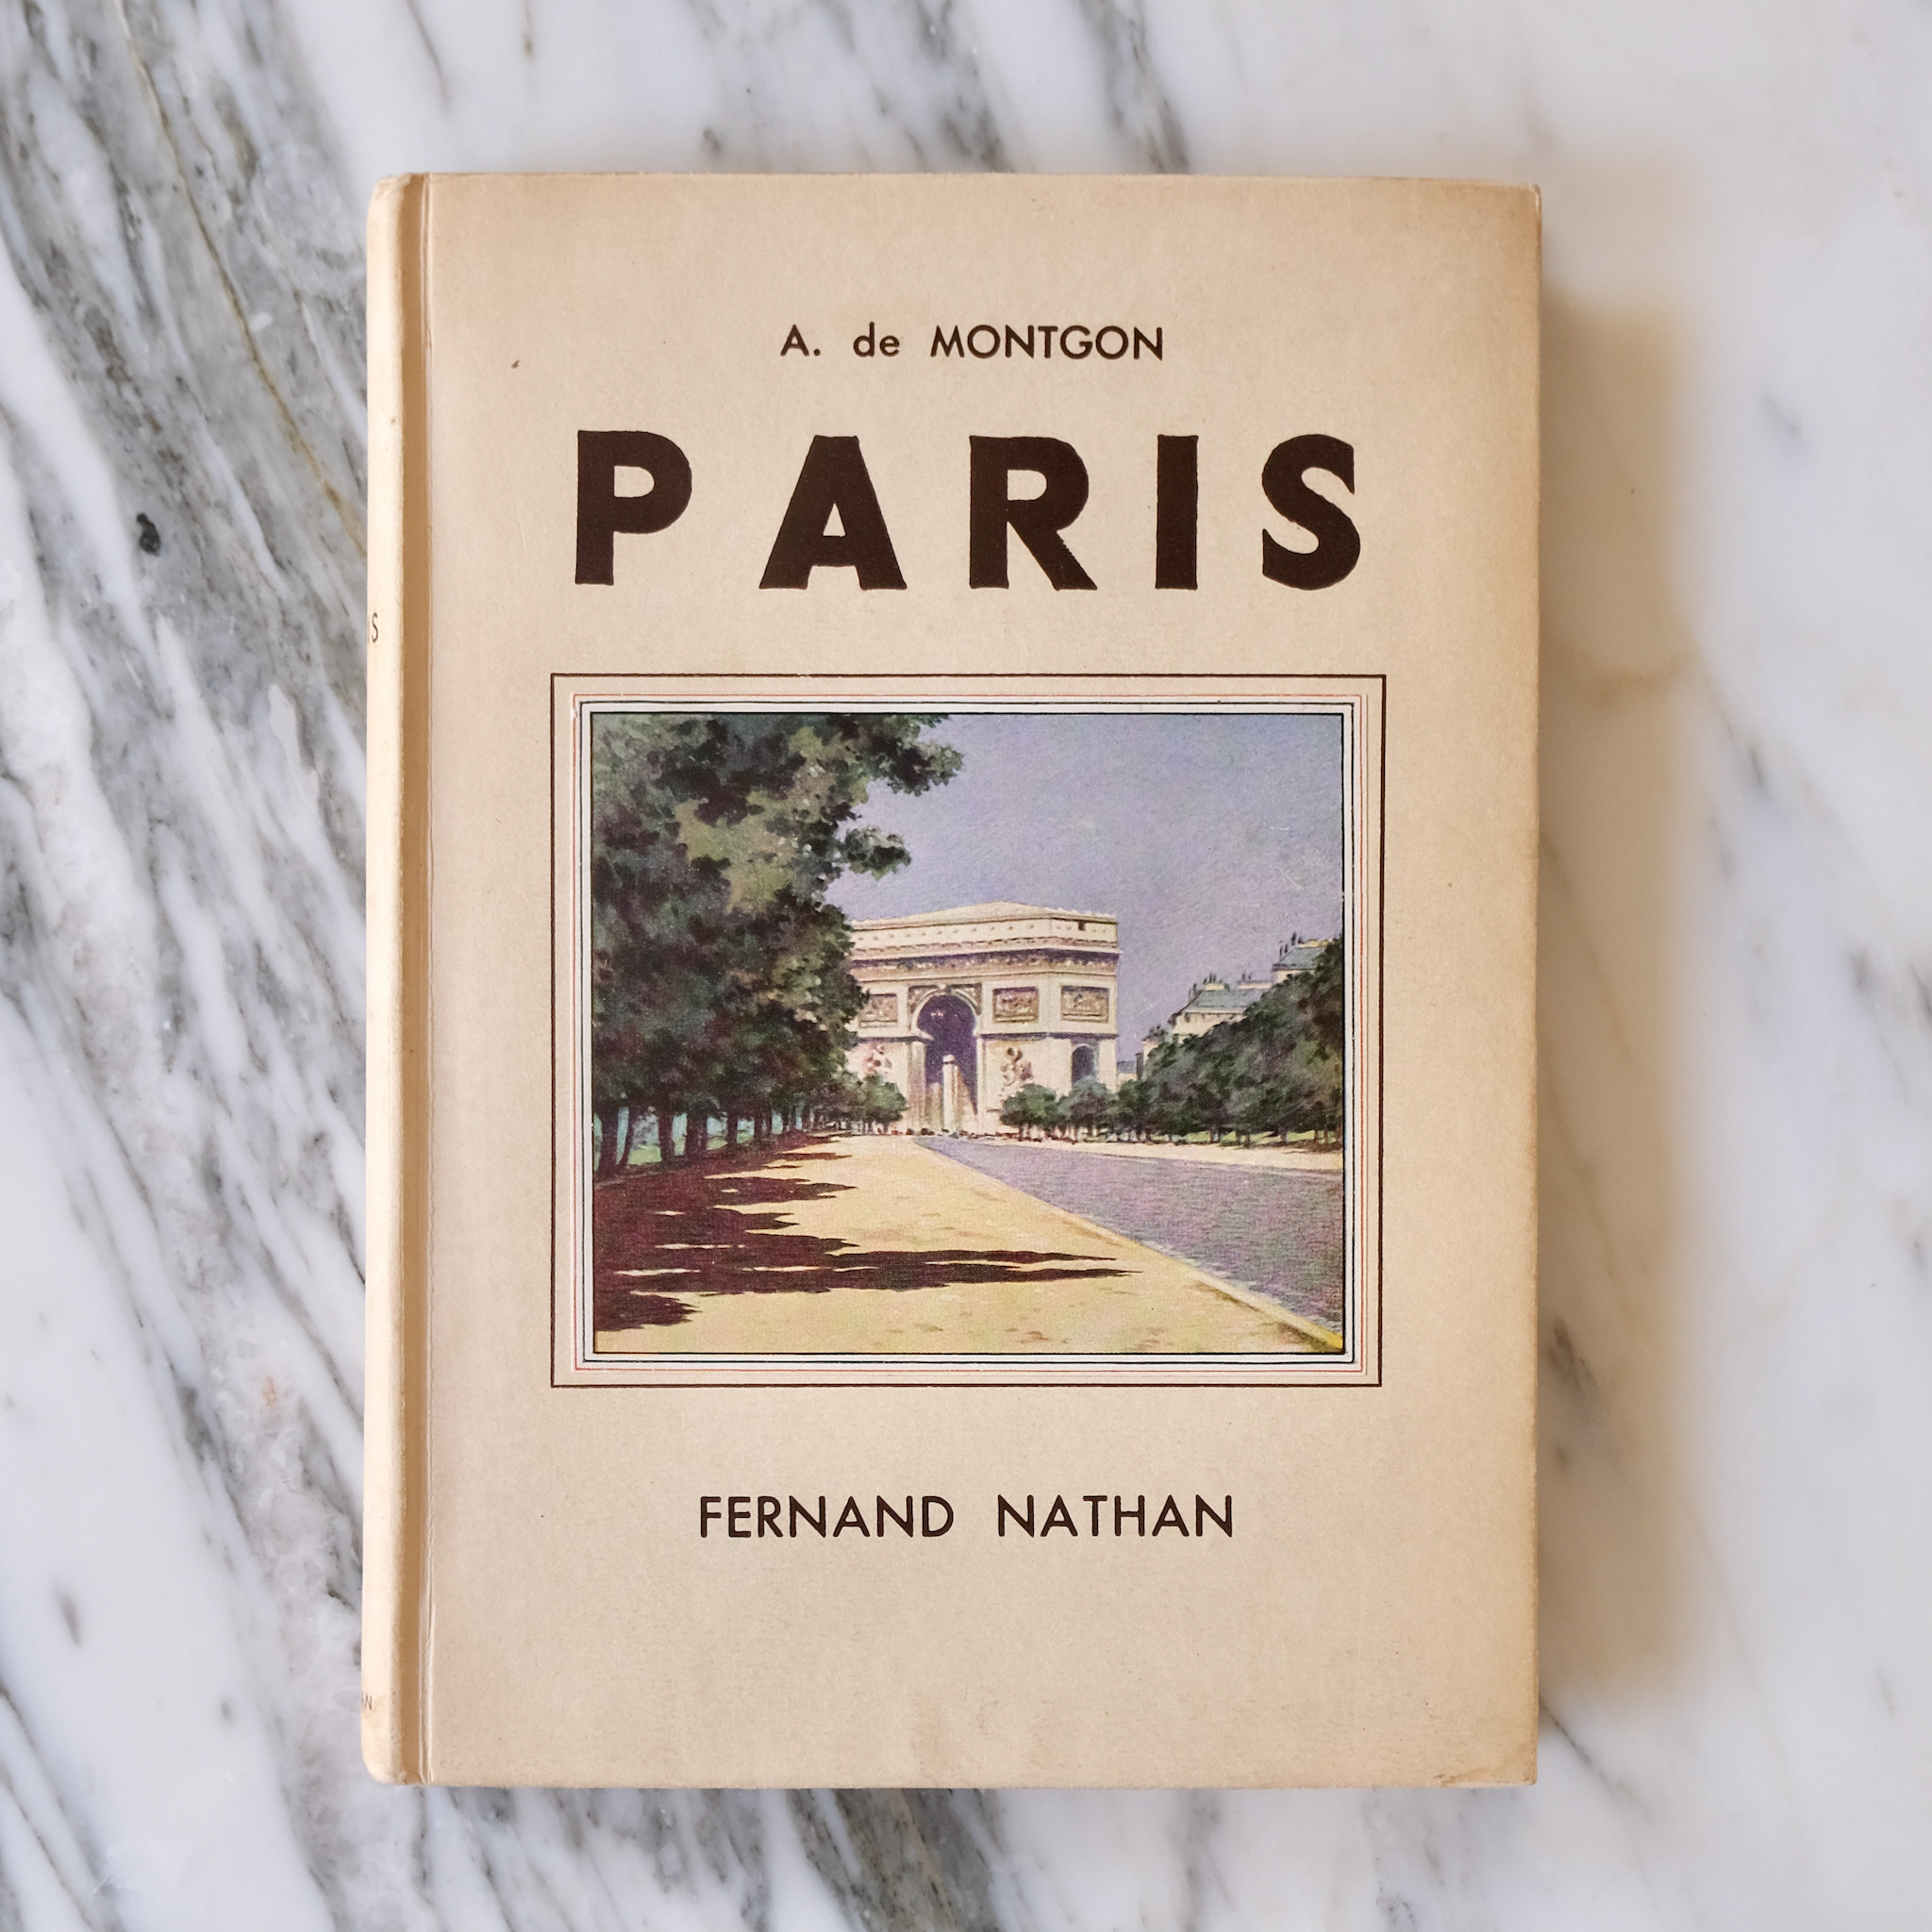 Paris 1942 edition book